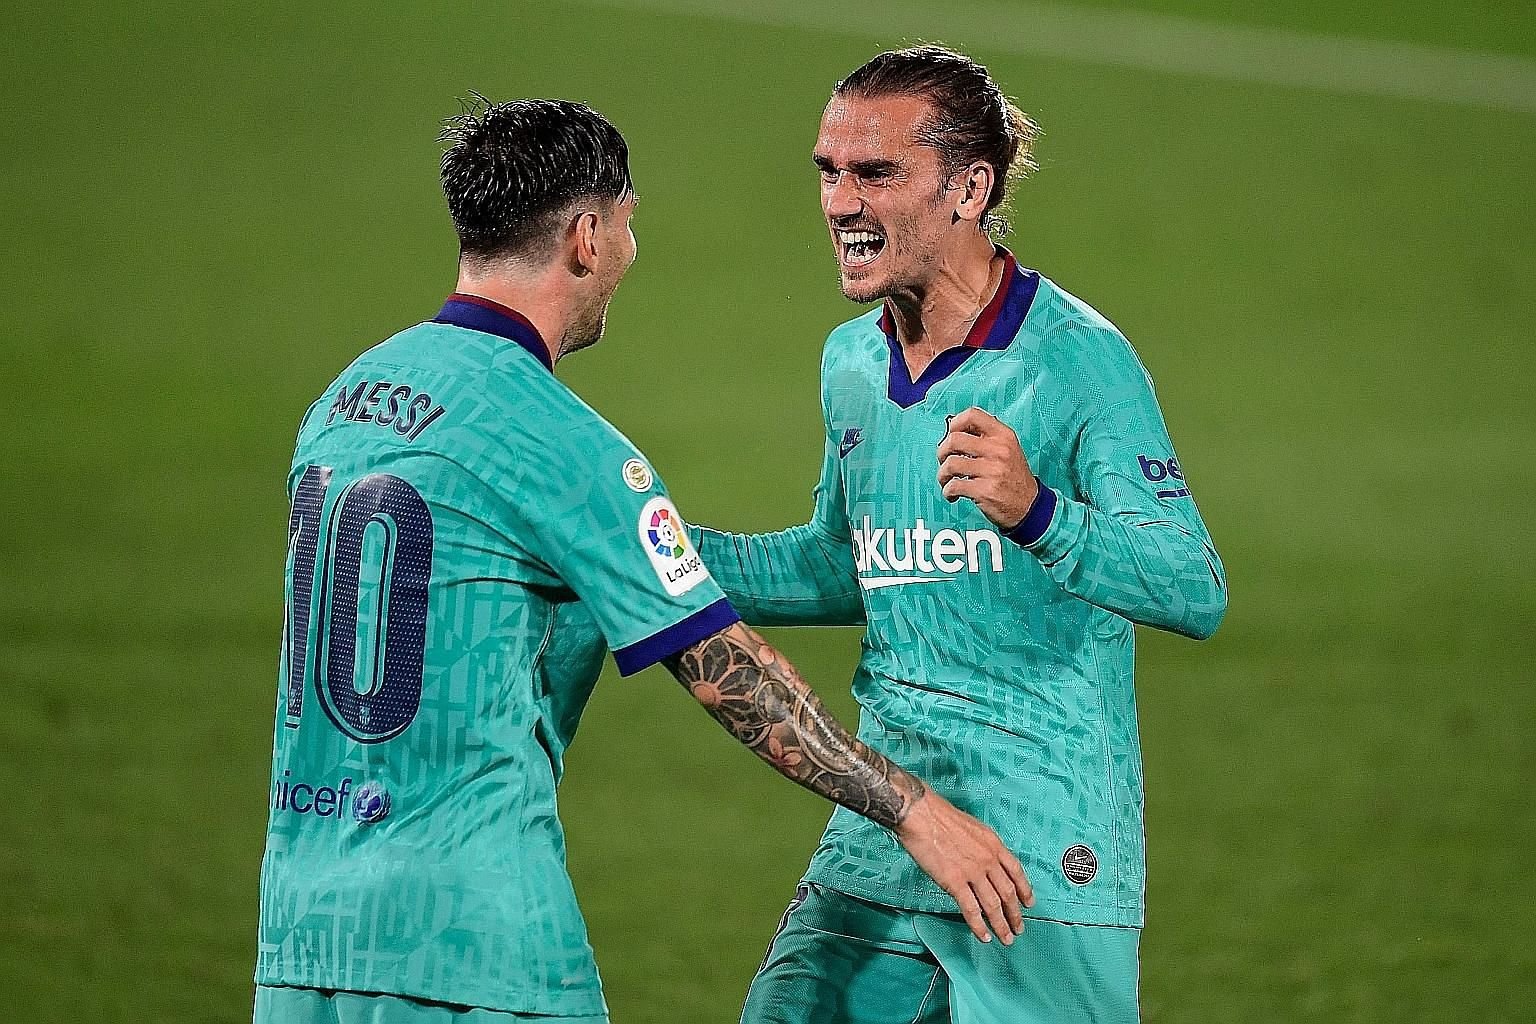 Antoine Griezmann celebrating with captain Lionel Messi after scoring against Villarreal on Sunday. Barcelona won 4-1 but trail Real Madrid by four points. PHOTO: AGENCE FRANCE-PRESSE